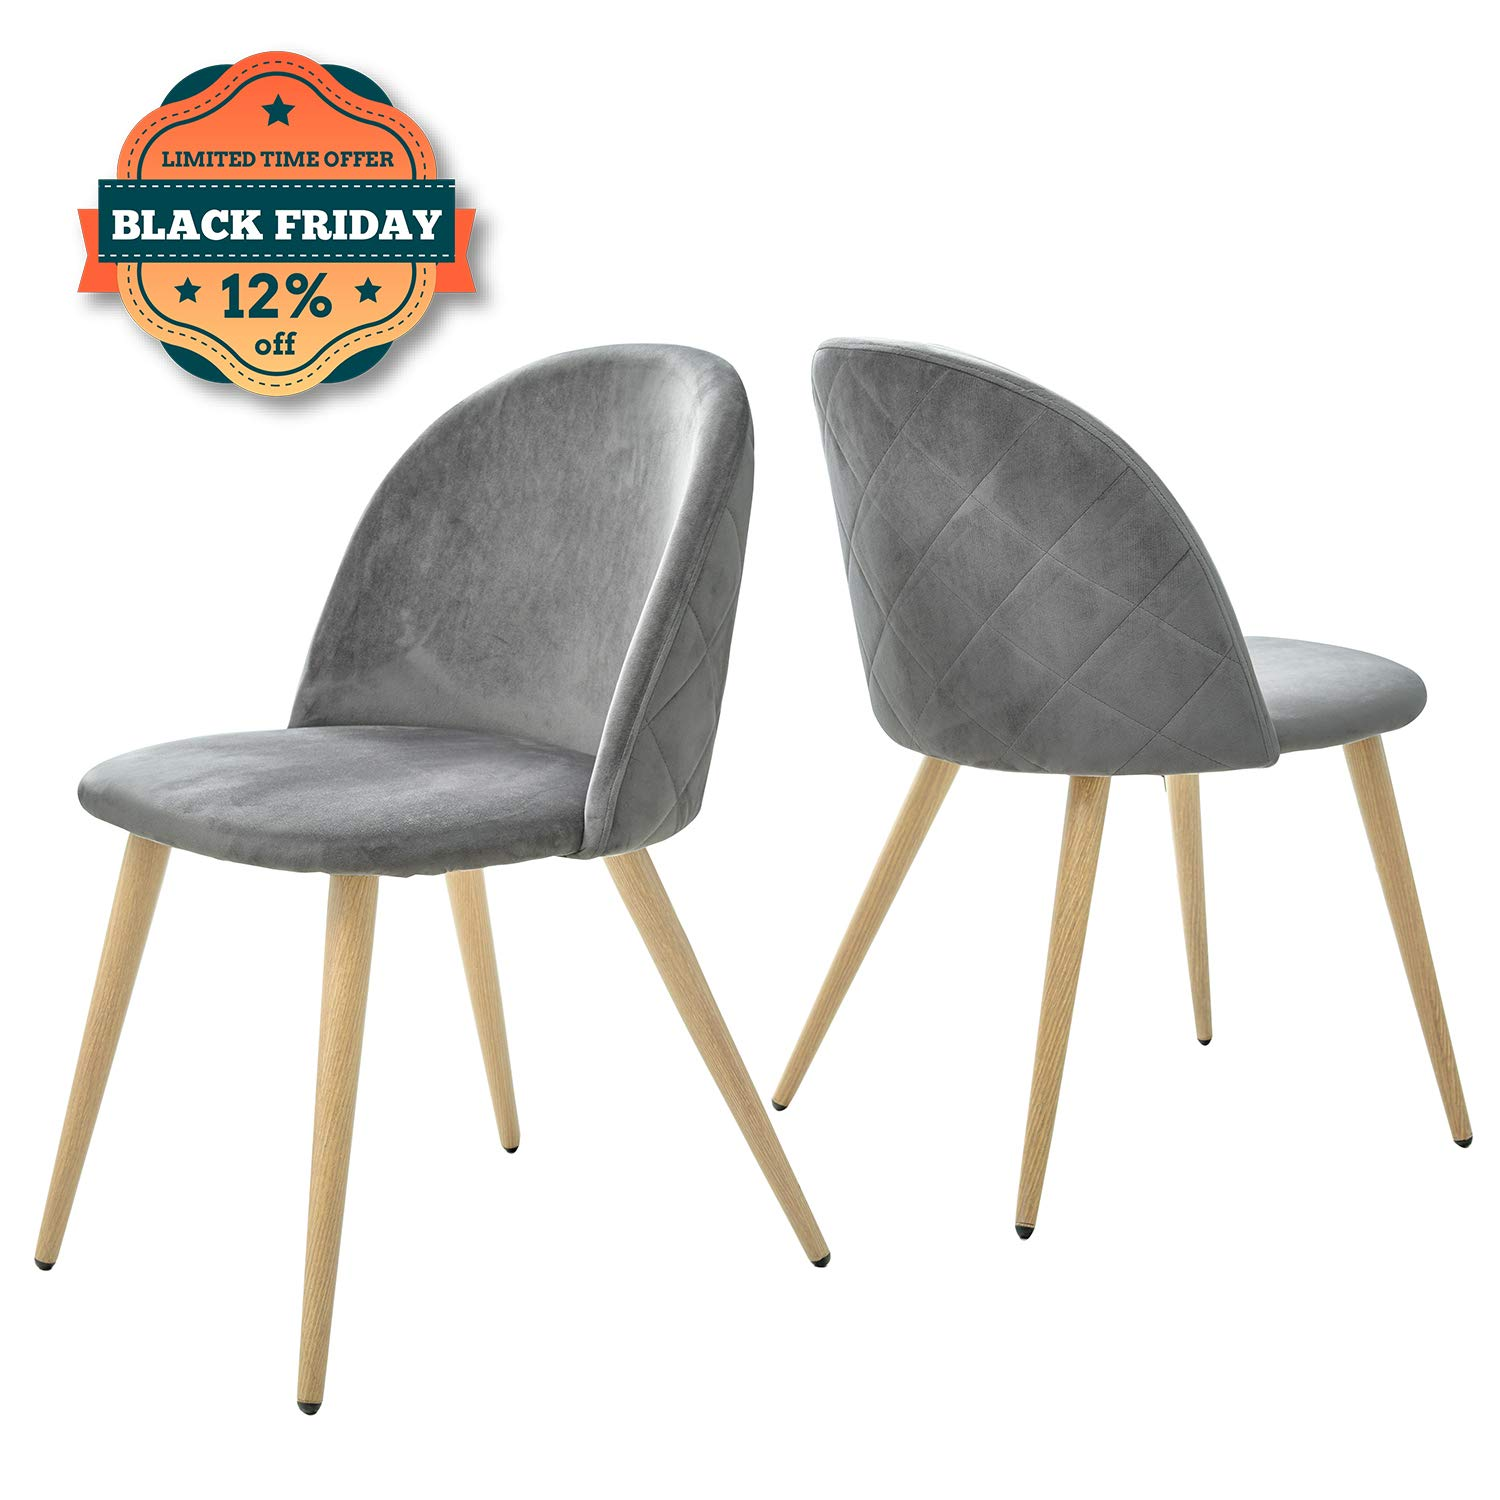 Kealive Dining Chairs Set of 2 Mid Century Modern Accent Velvet Leisure Side Chairs Upholstered Metal Legs for Living Room, Grey